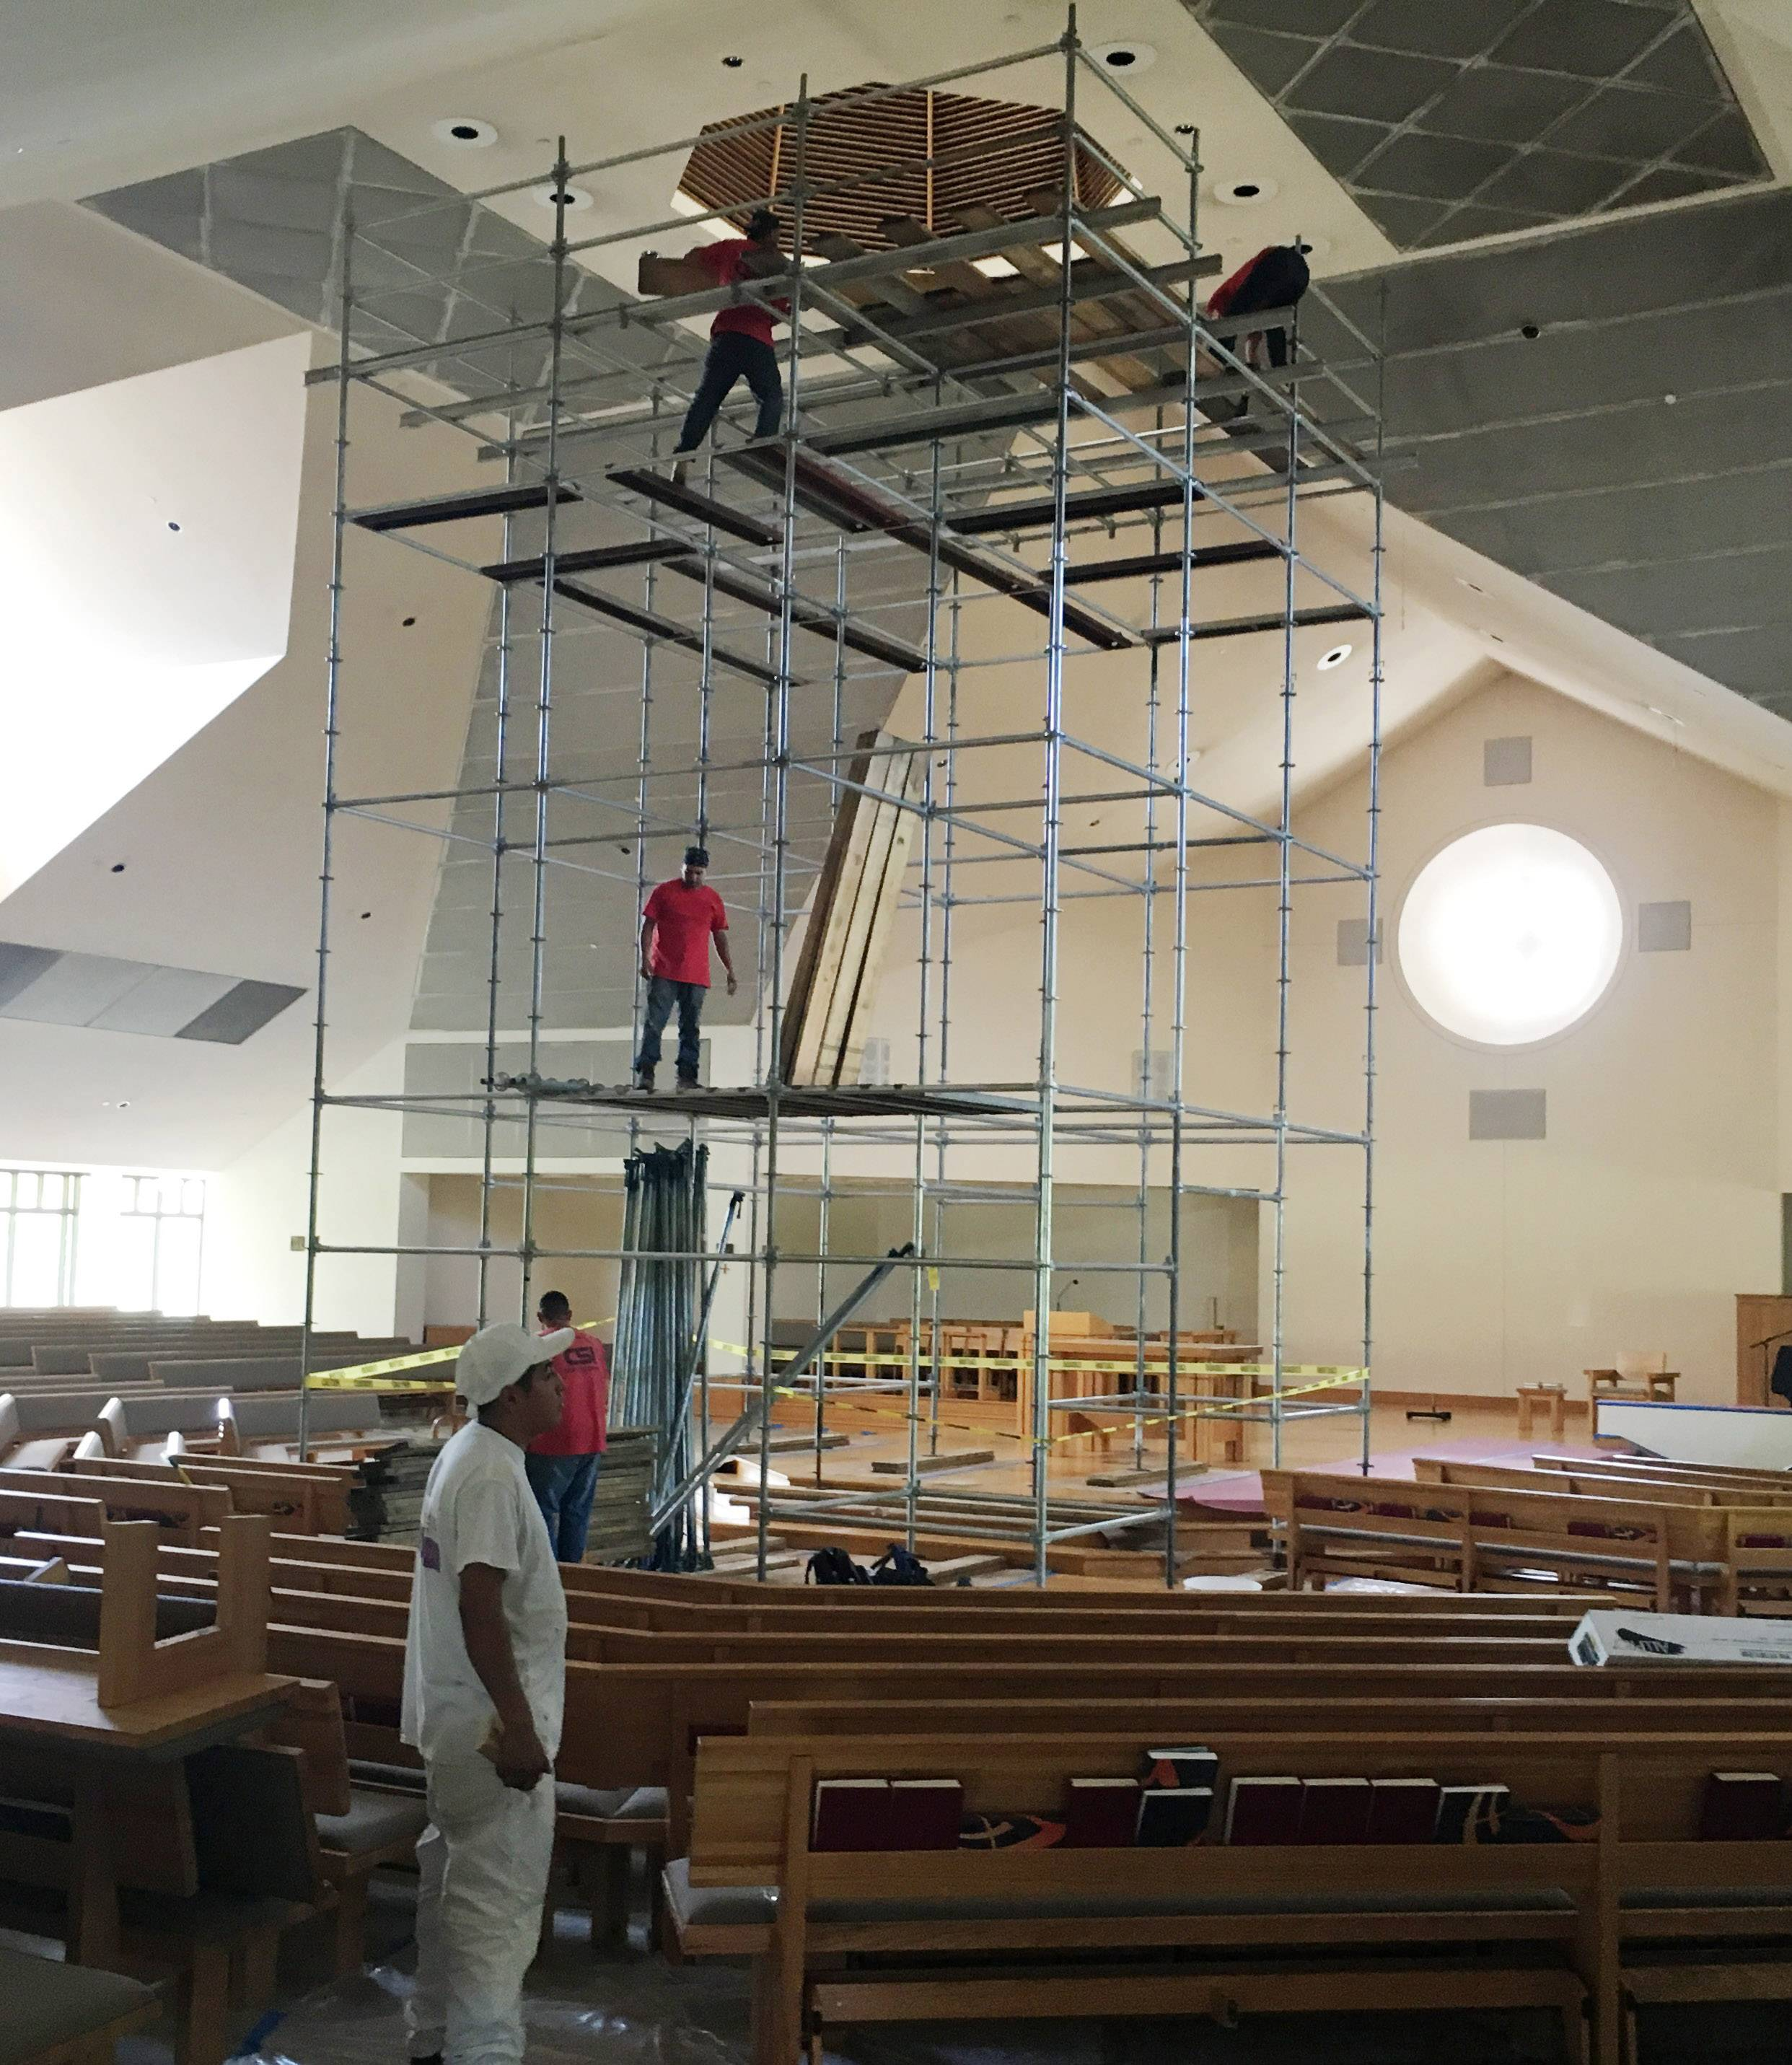 Scaffolding takes center stage as extensive restoration work is performed at St. Paul the Apostle Church in Gurnee.